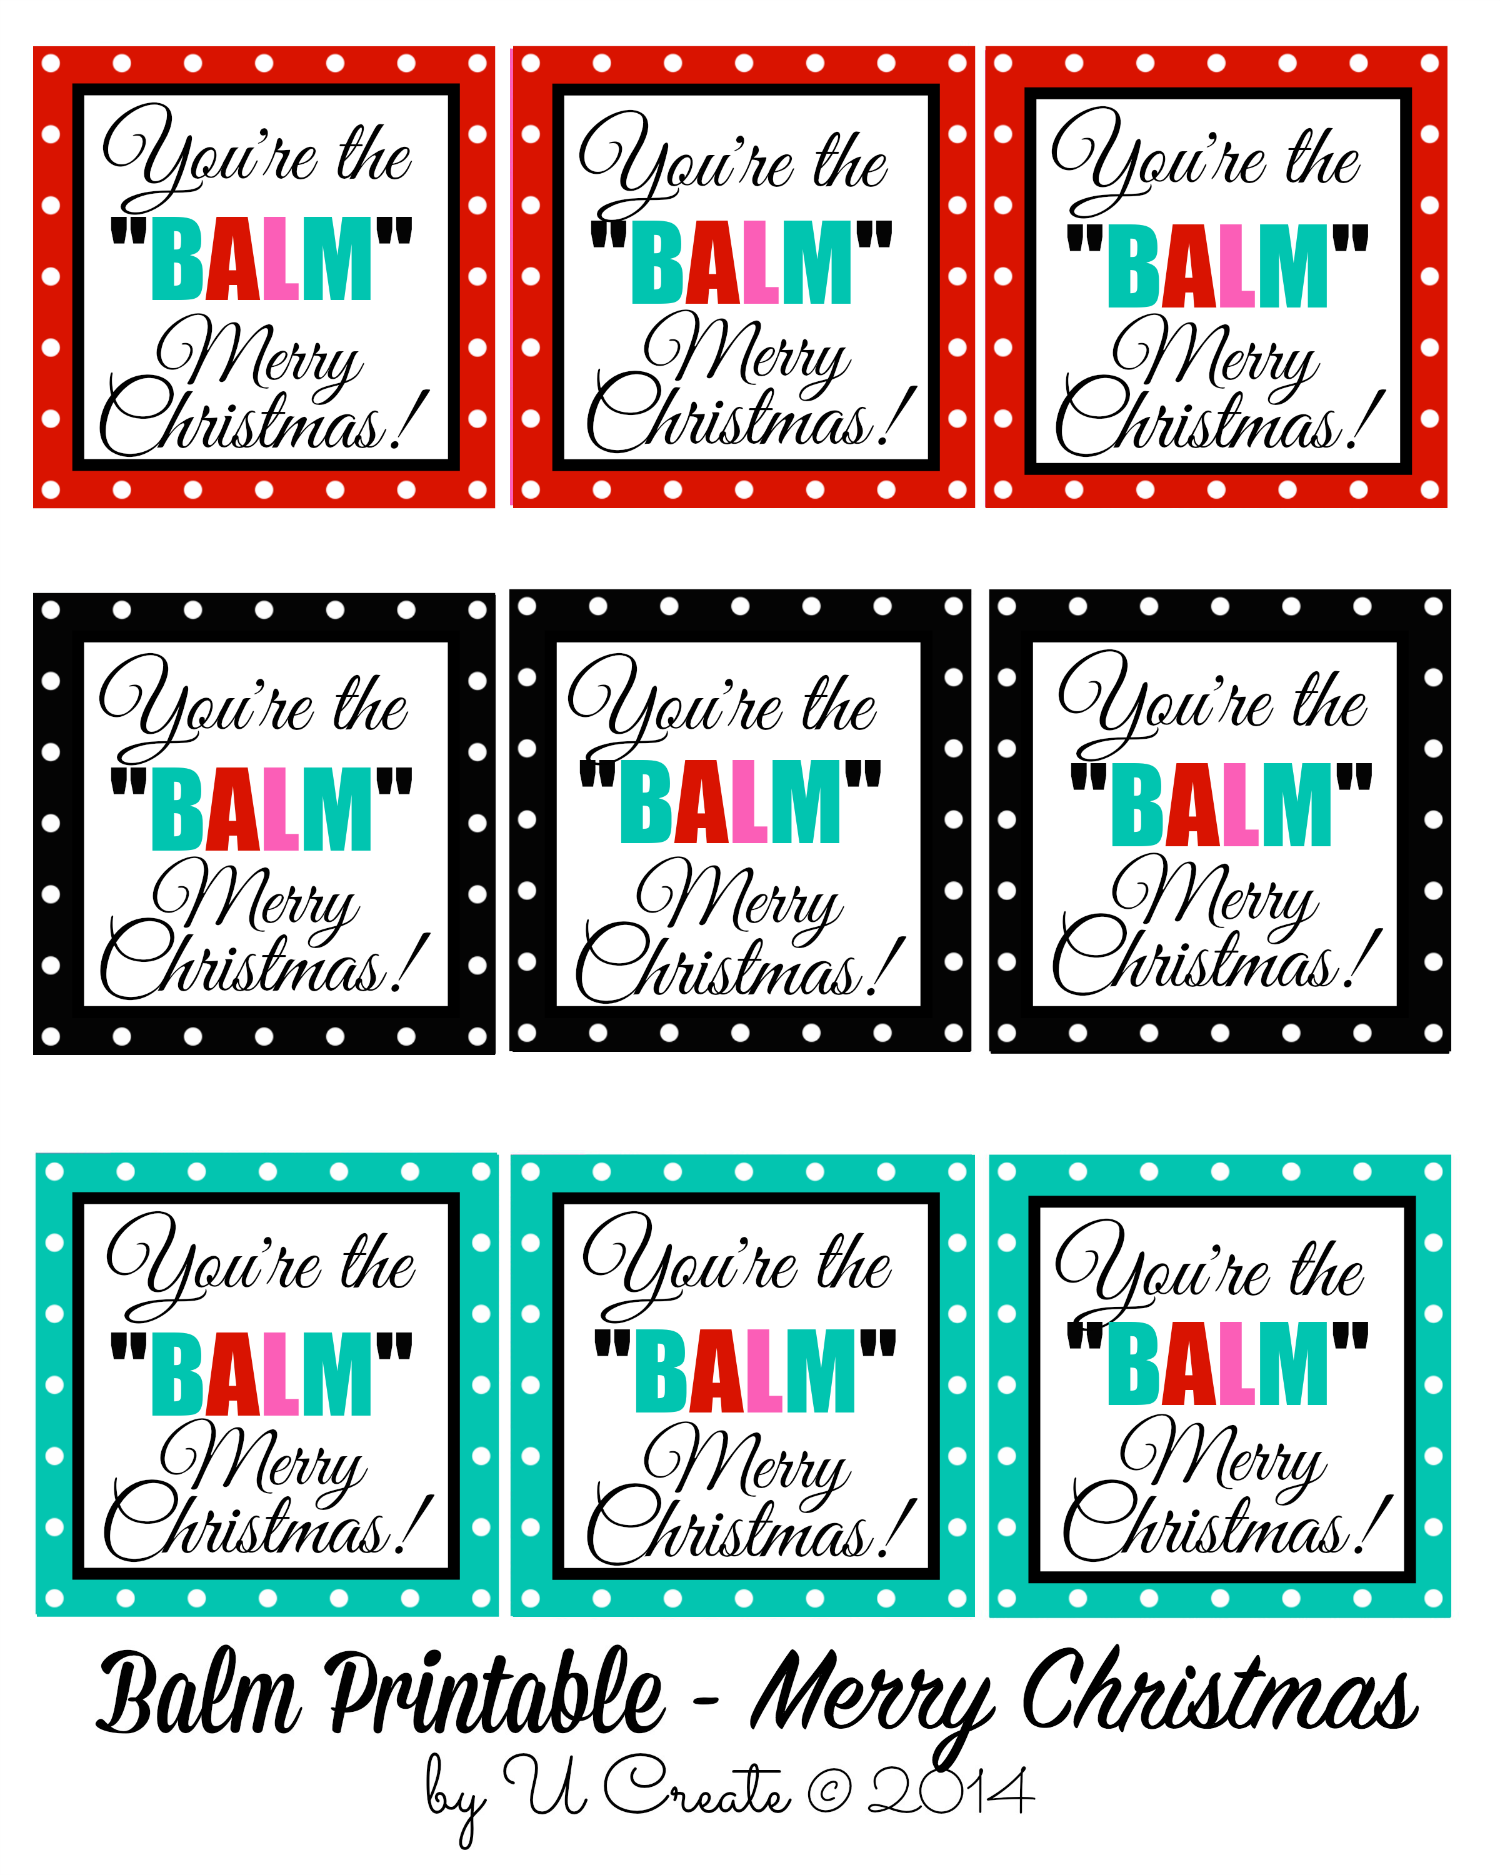 photograph about You're the Balm Teacher Free Printable named Youre the BALM - Xmas Printables - U Build